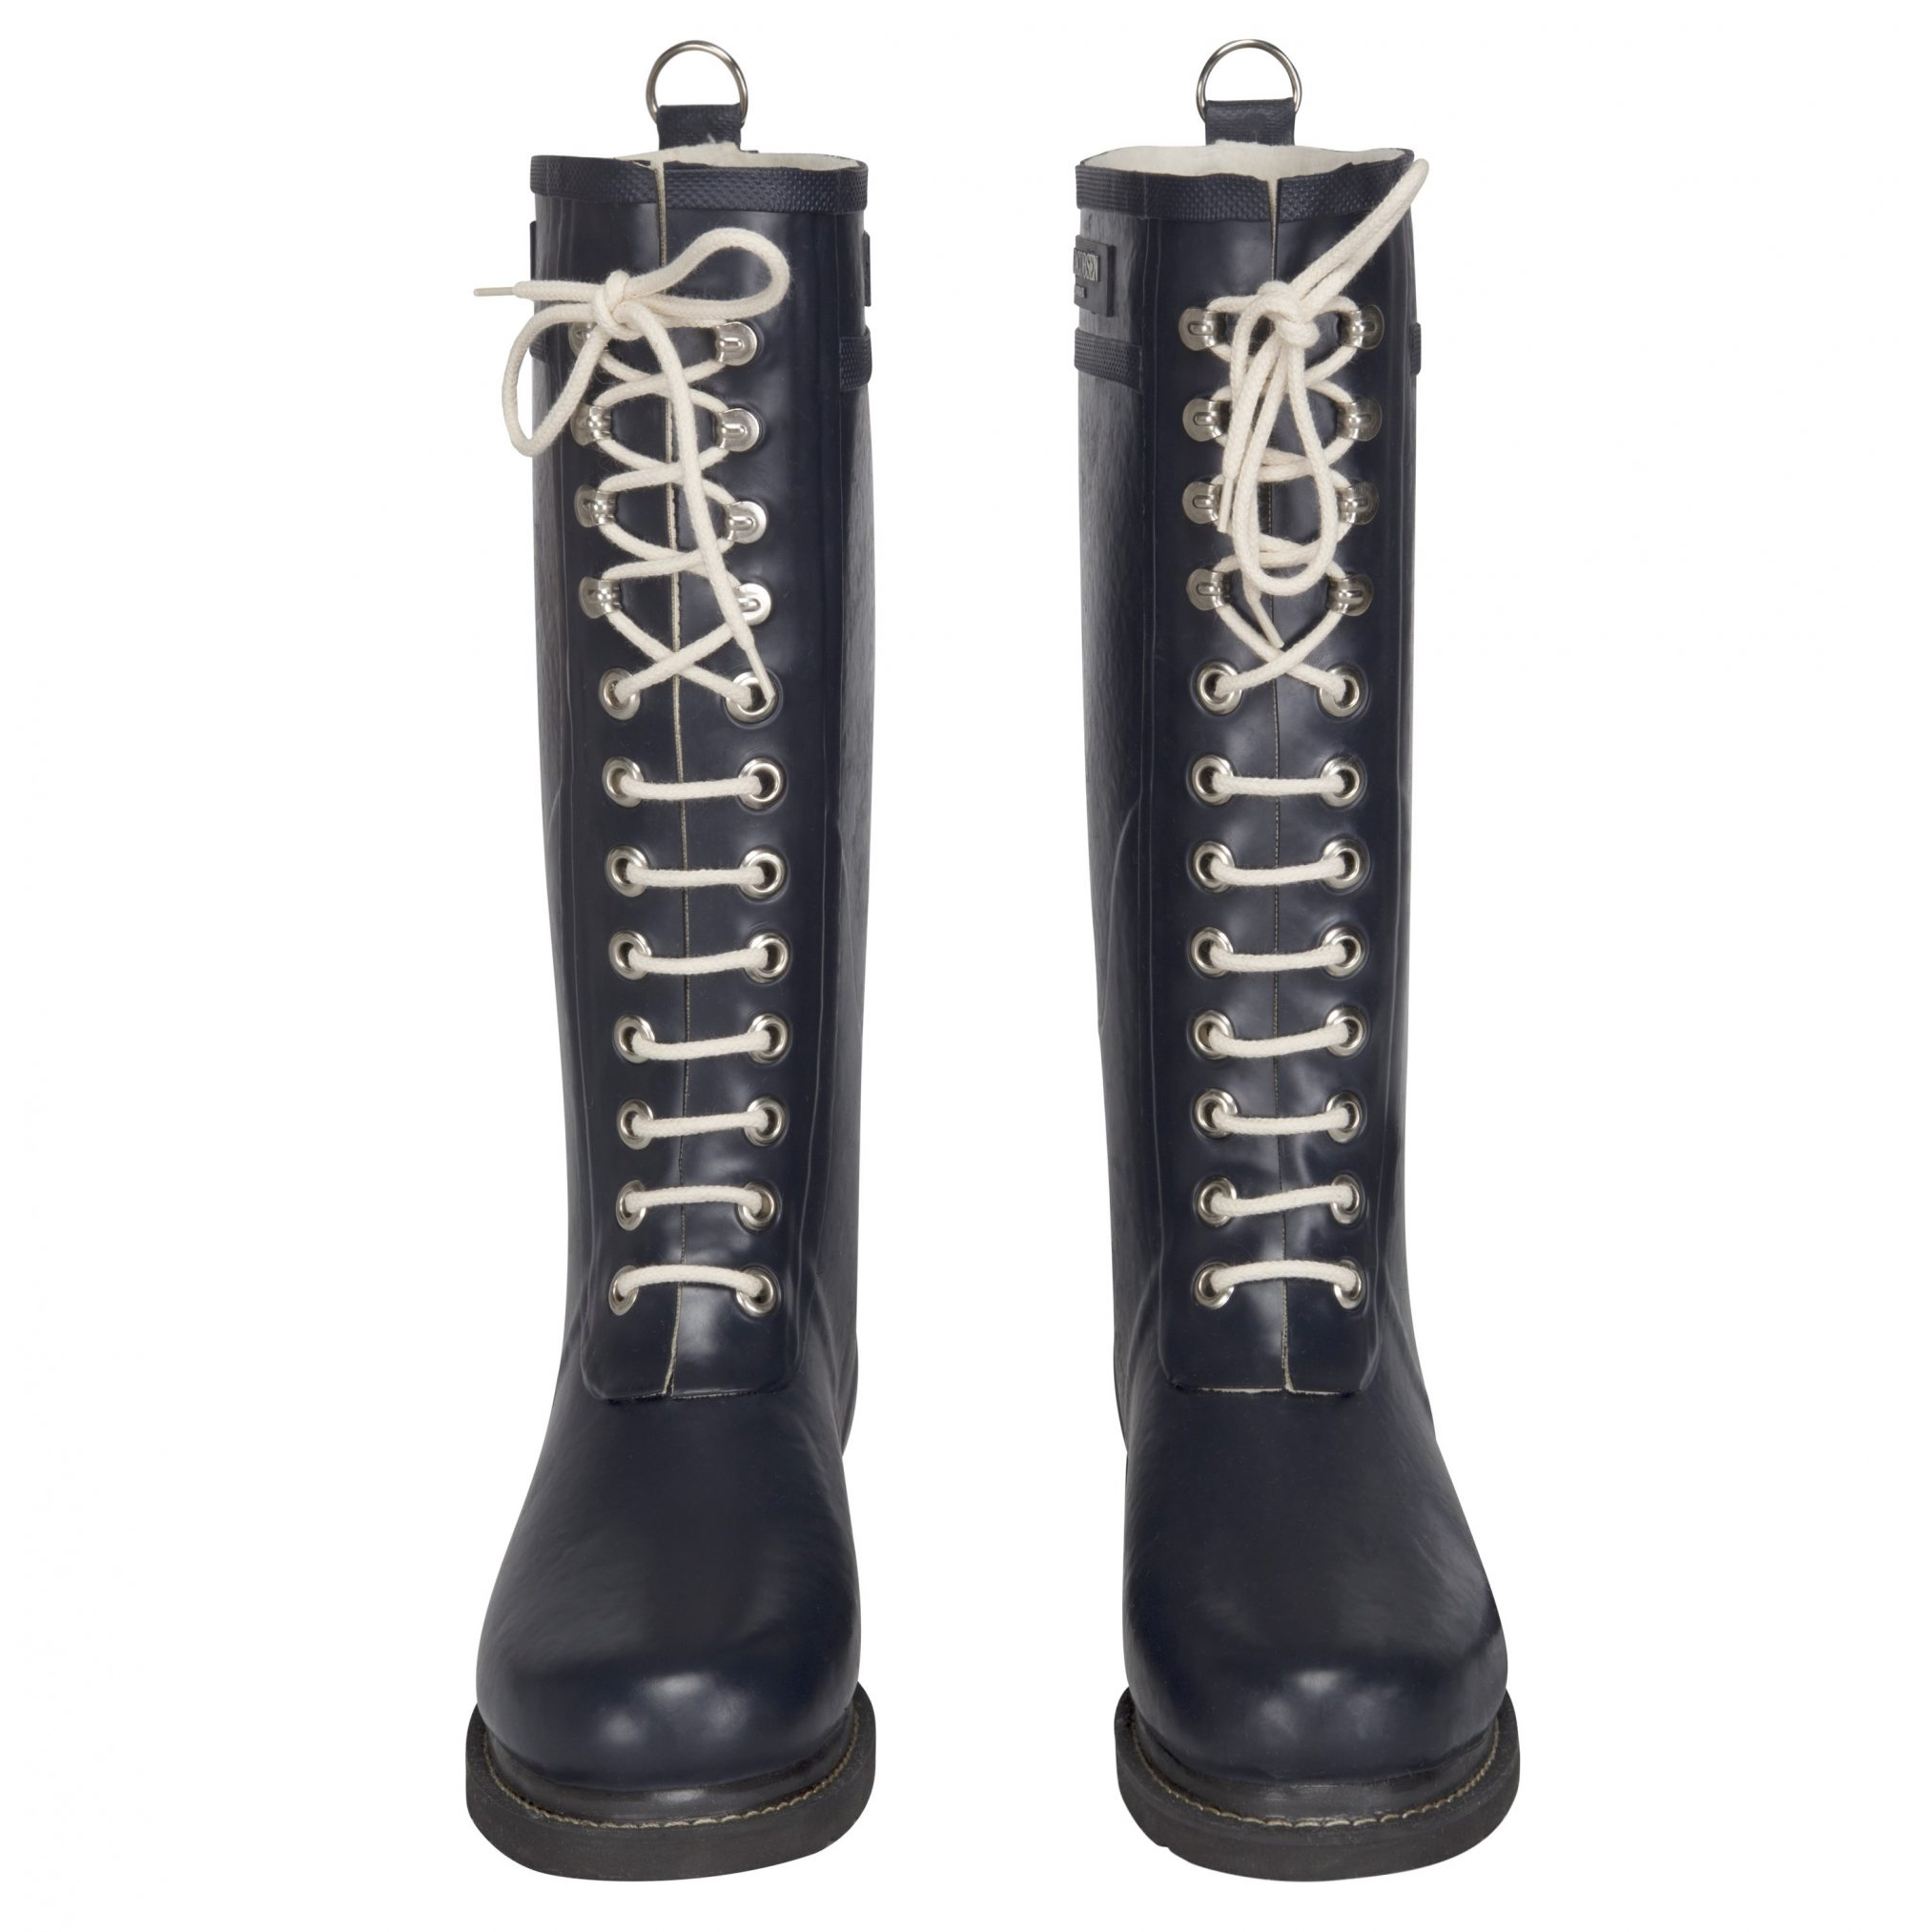 Ilse Jacobsen Tall Laced Rubberboot - Dark Indigo